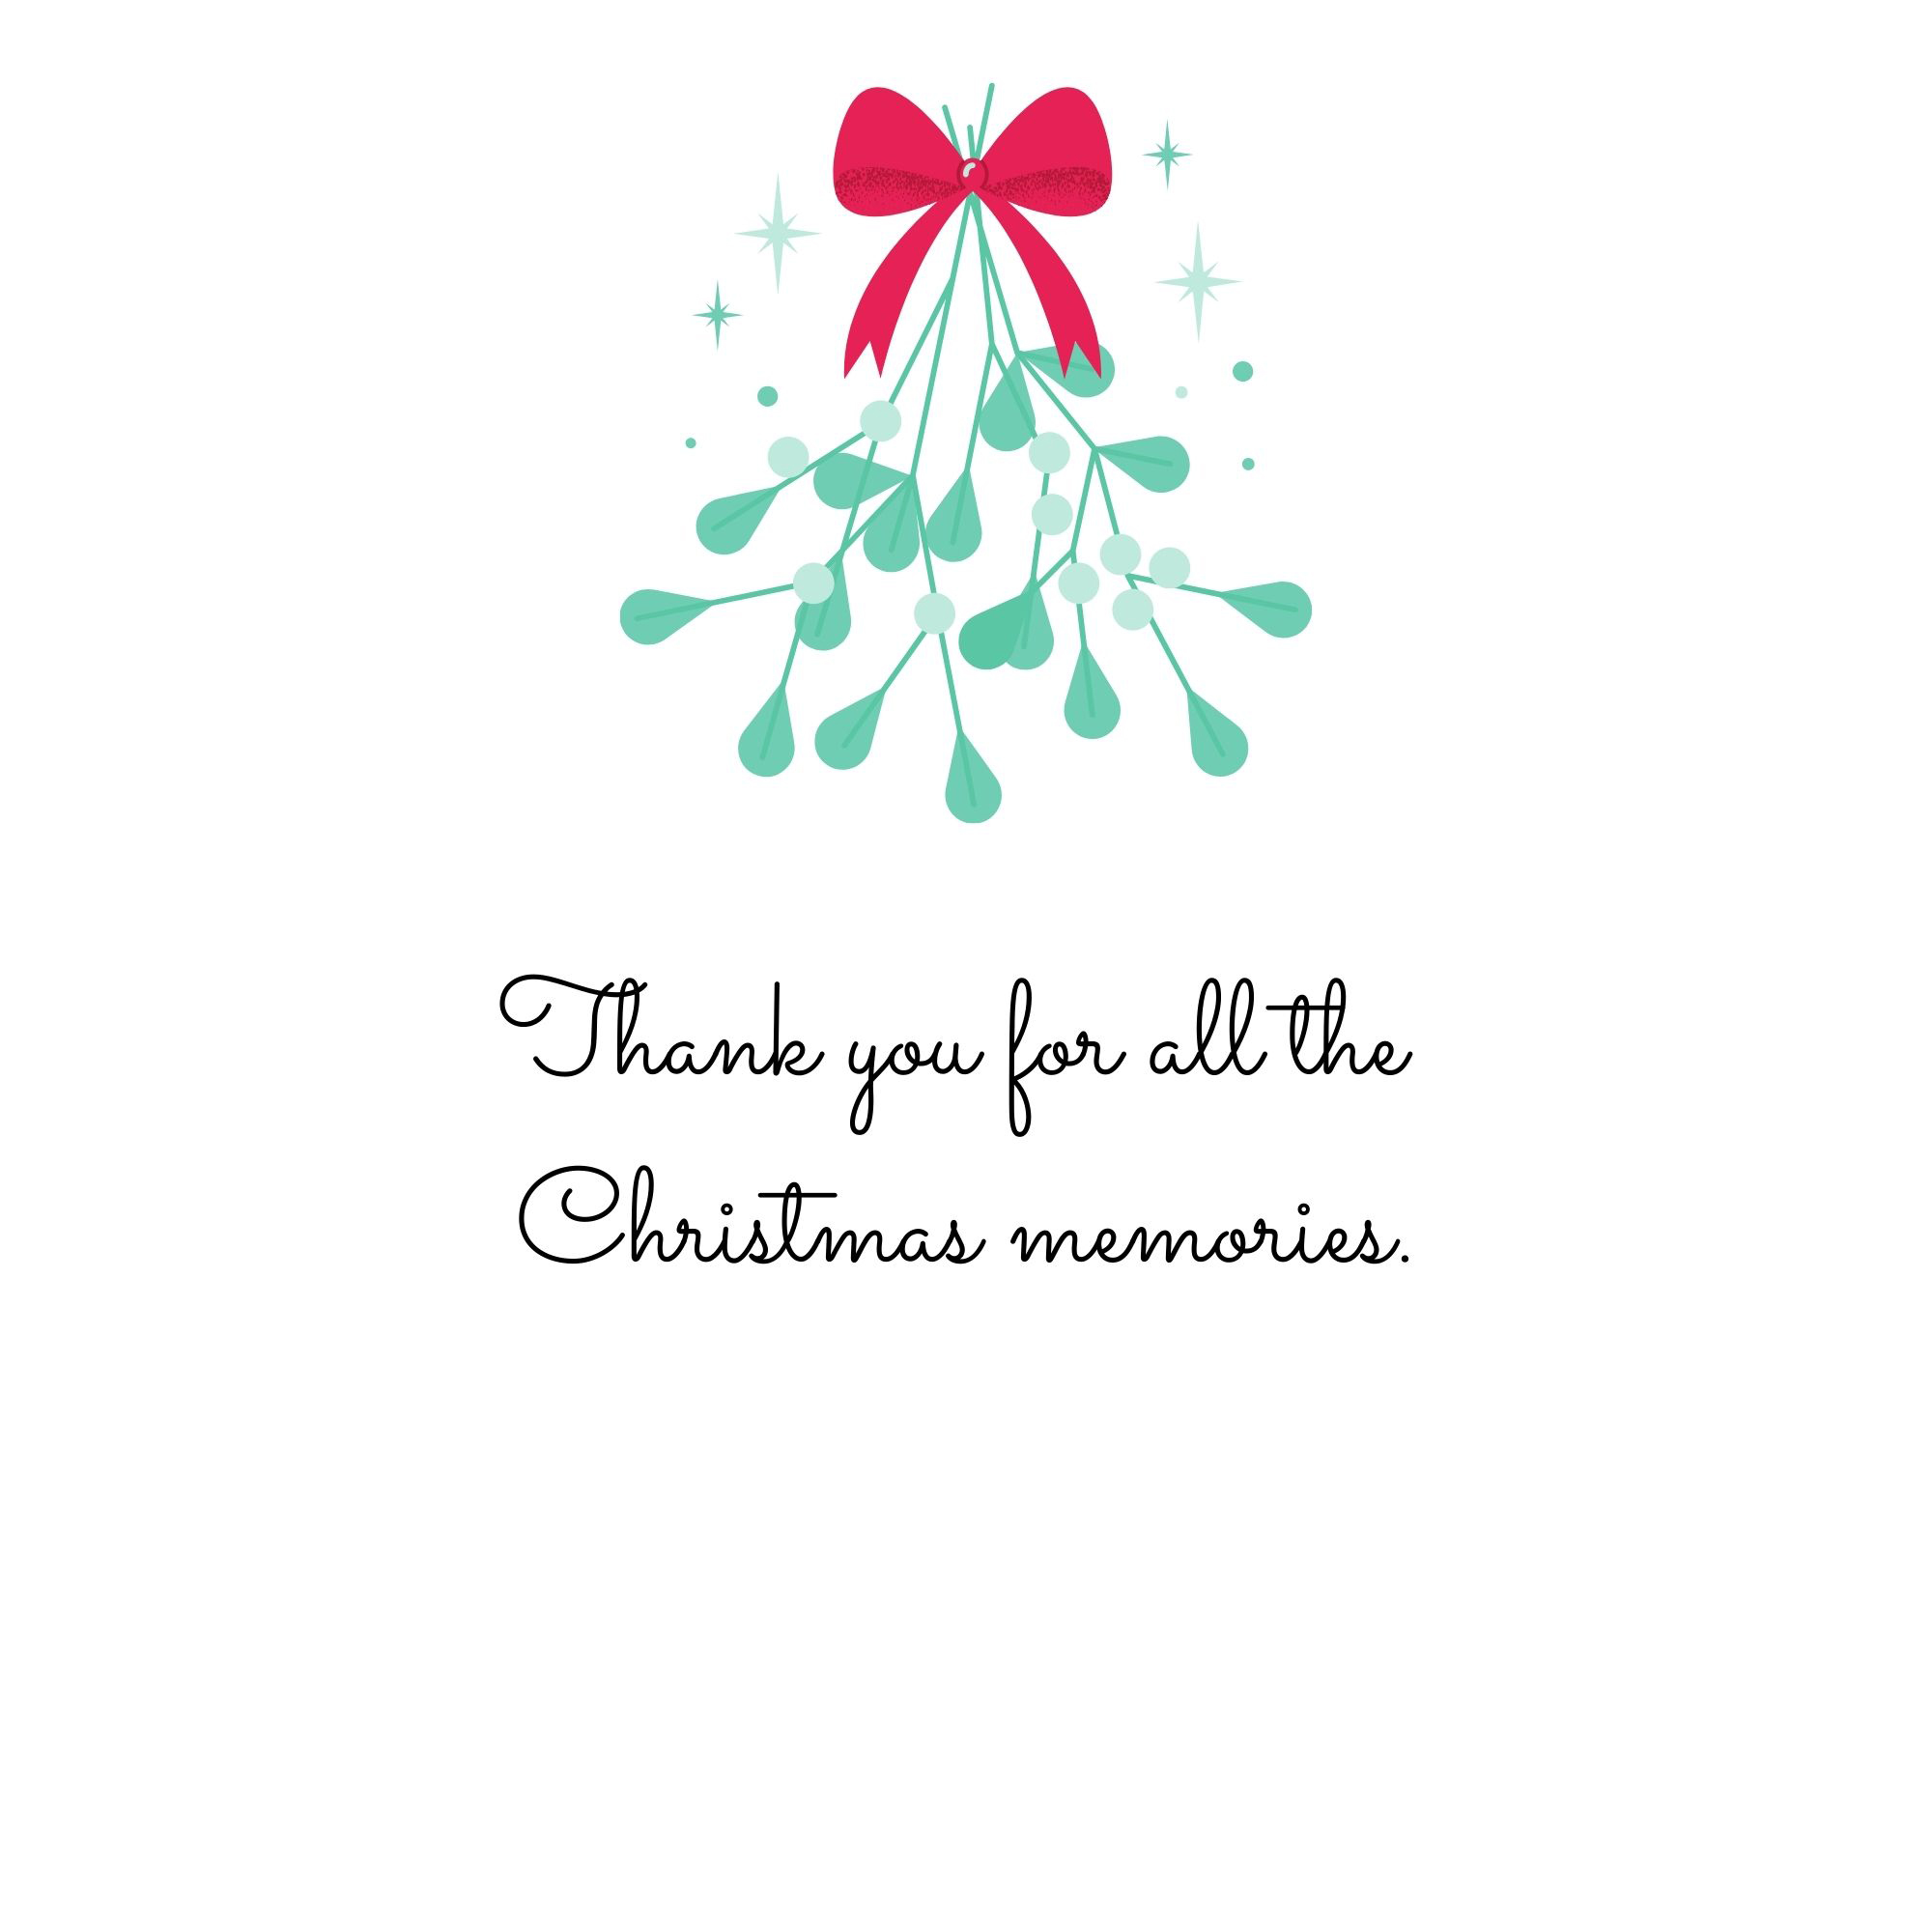 Thank you for all the Christmas memories.